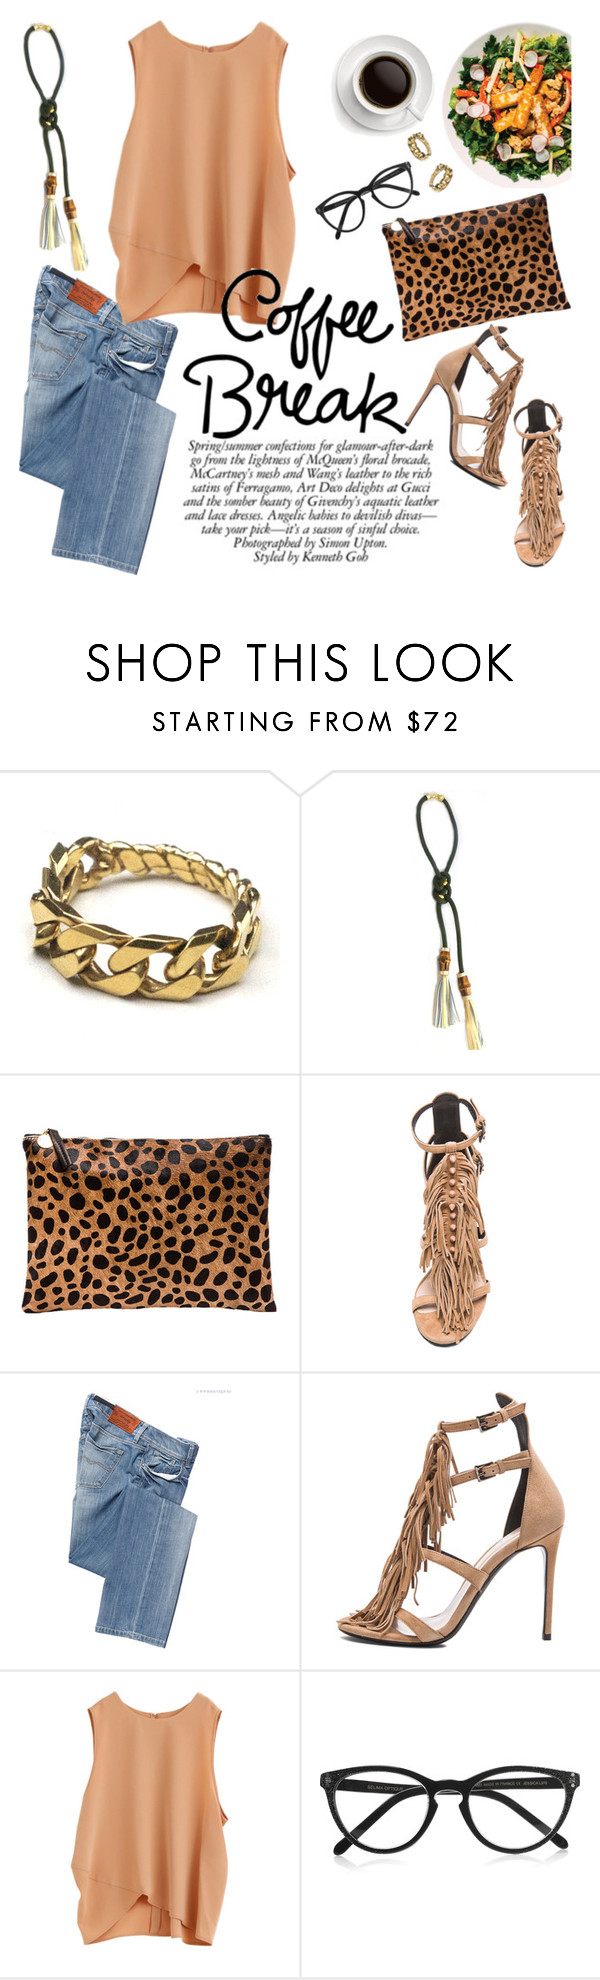 """""""Coffee break"""" by punnky ❤ liked on Polyvore featuring Clare V., Barbara Bui, Salsa and Selima Optique"""